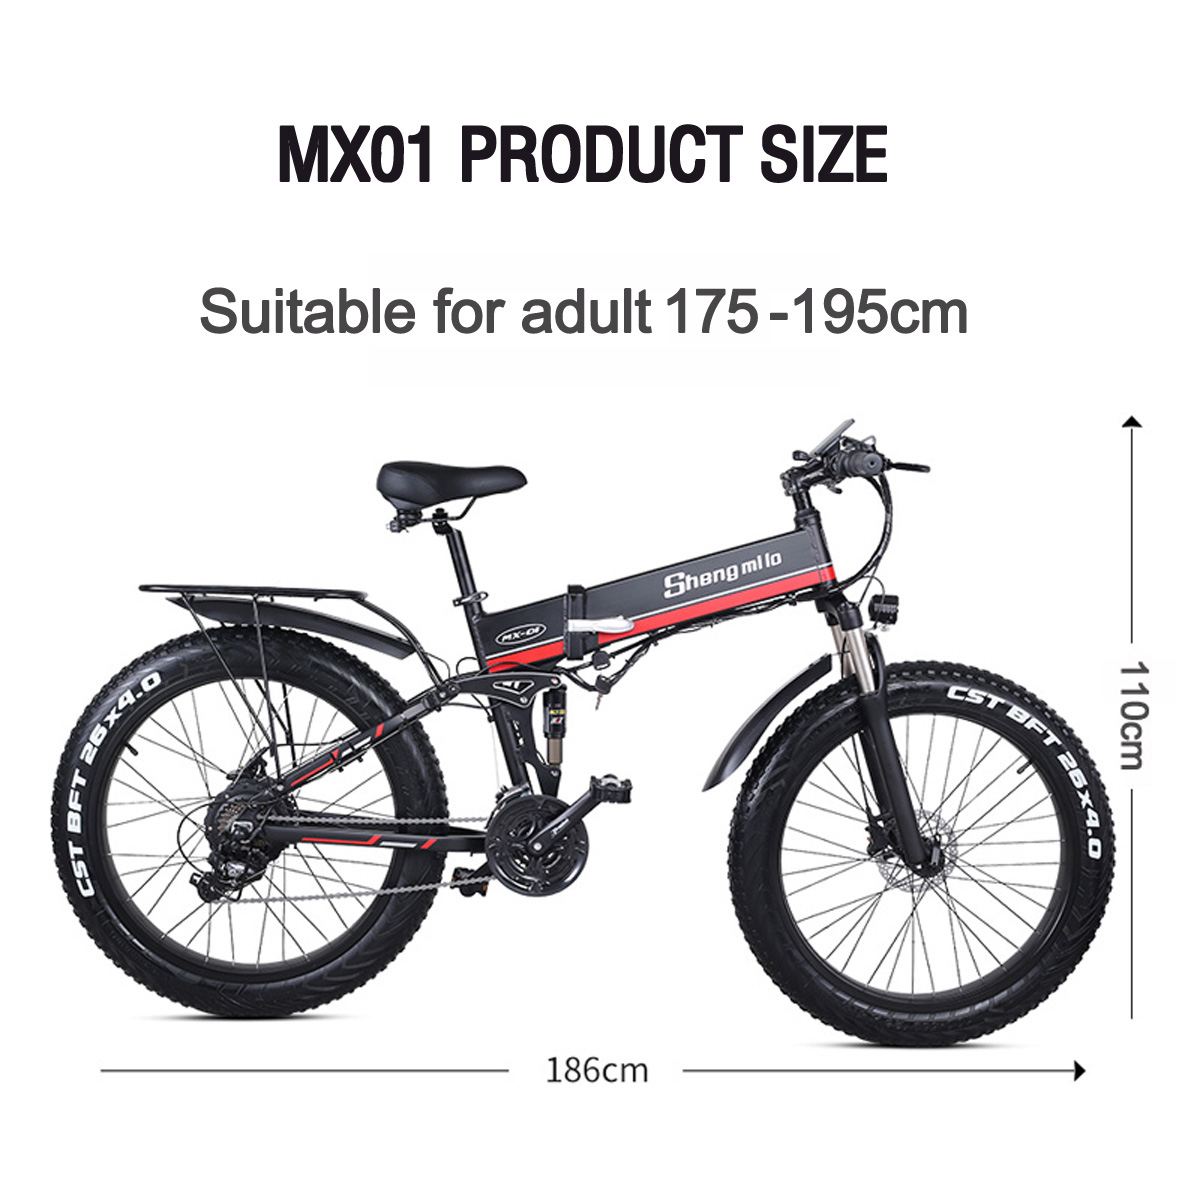 MX21 21W Strong Electric Snow Bike, 21 grade Pedal Assist ...